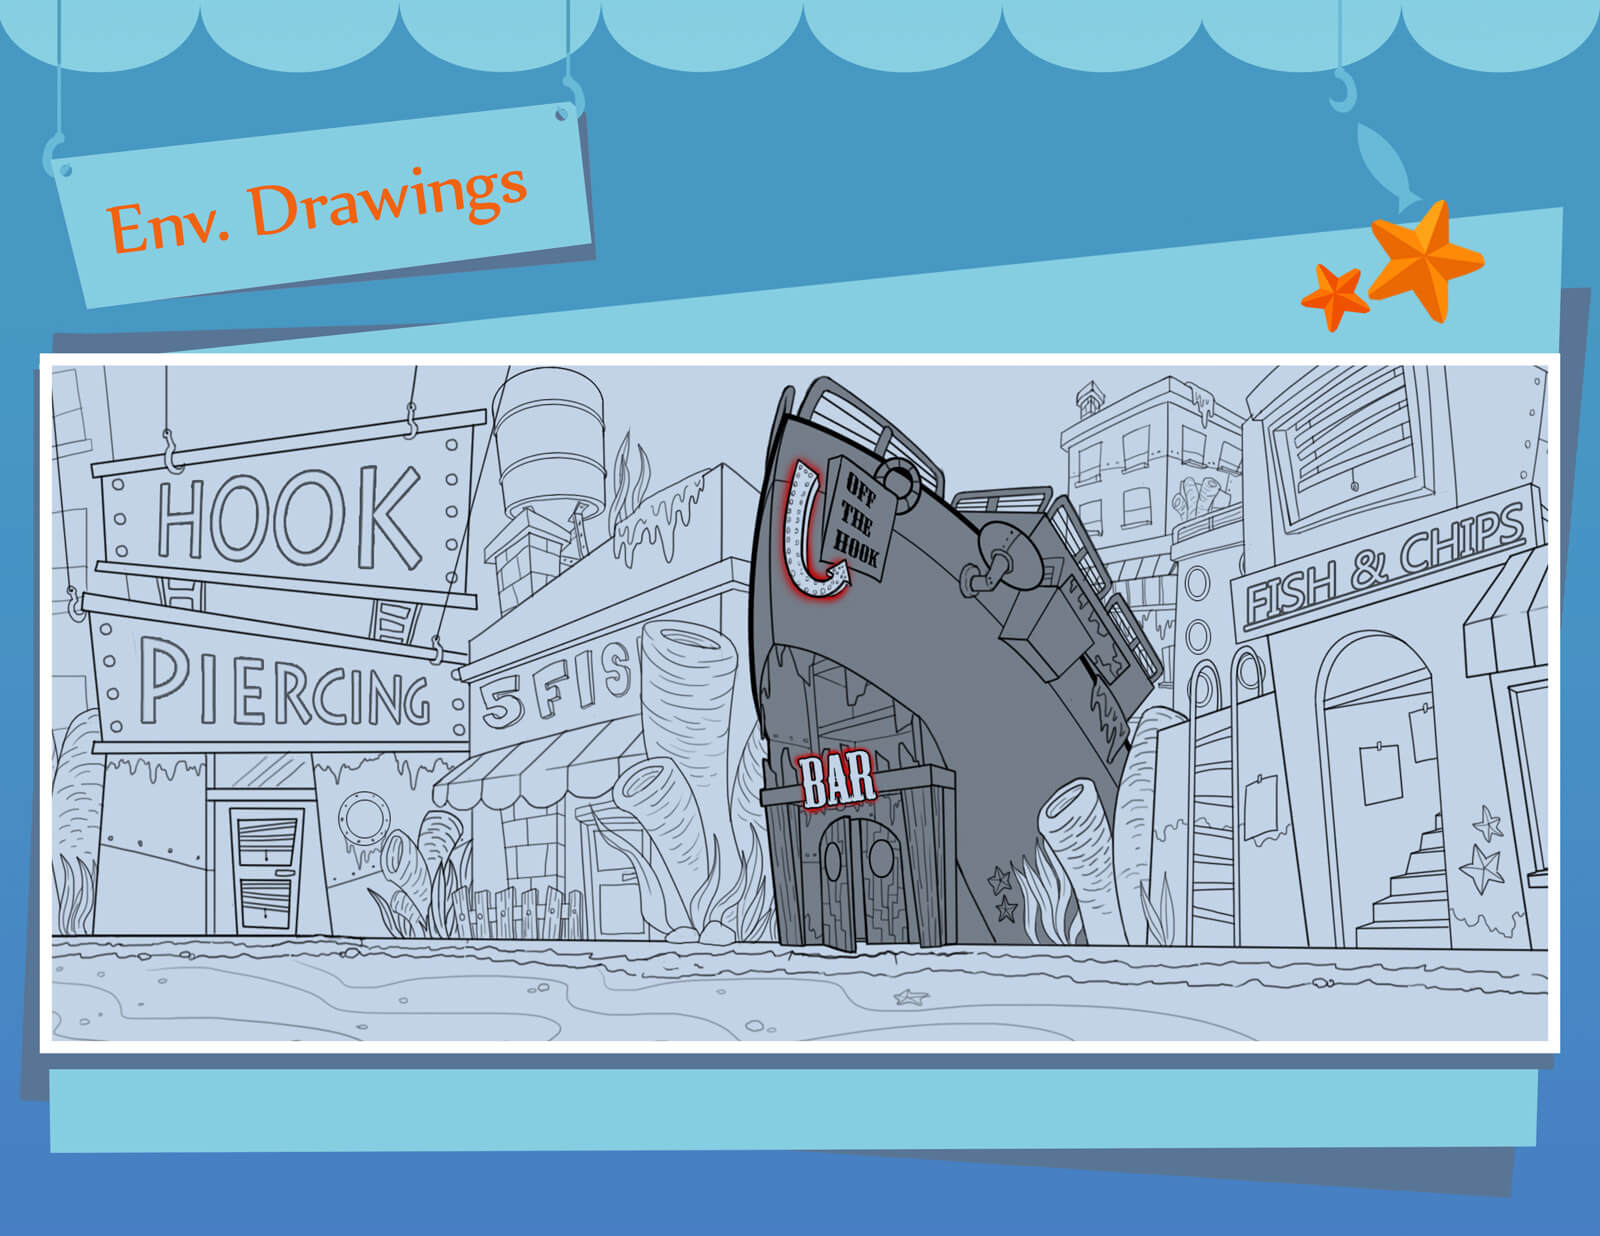 Environmental sketches and drawings of underwater street and buildings seen in the film Bait & Switch